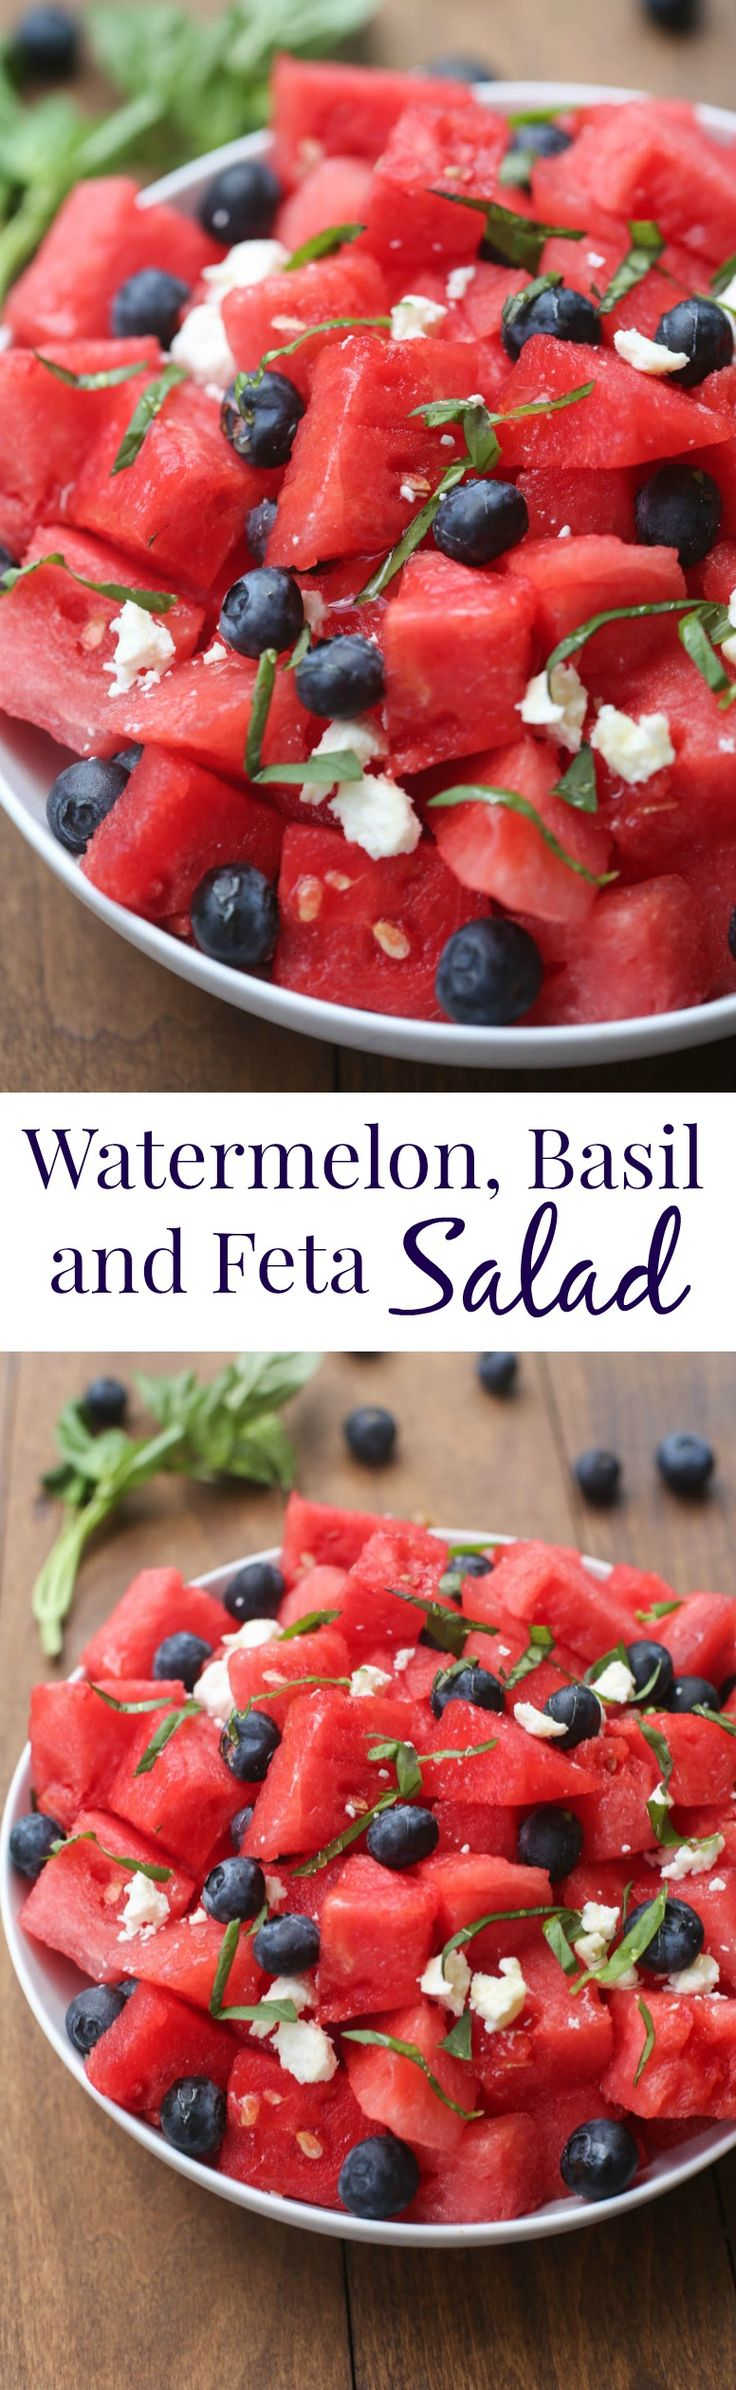 Watermelon, Basil and Feta Salad   Tastes Better From Scratch